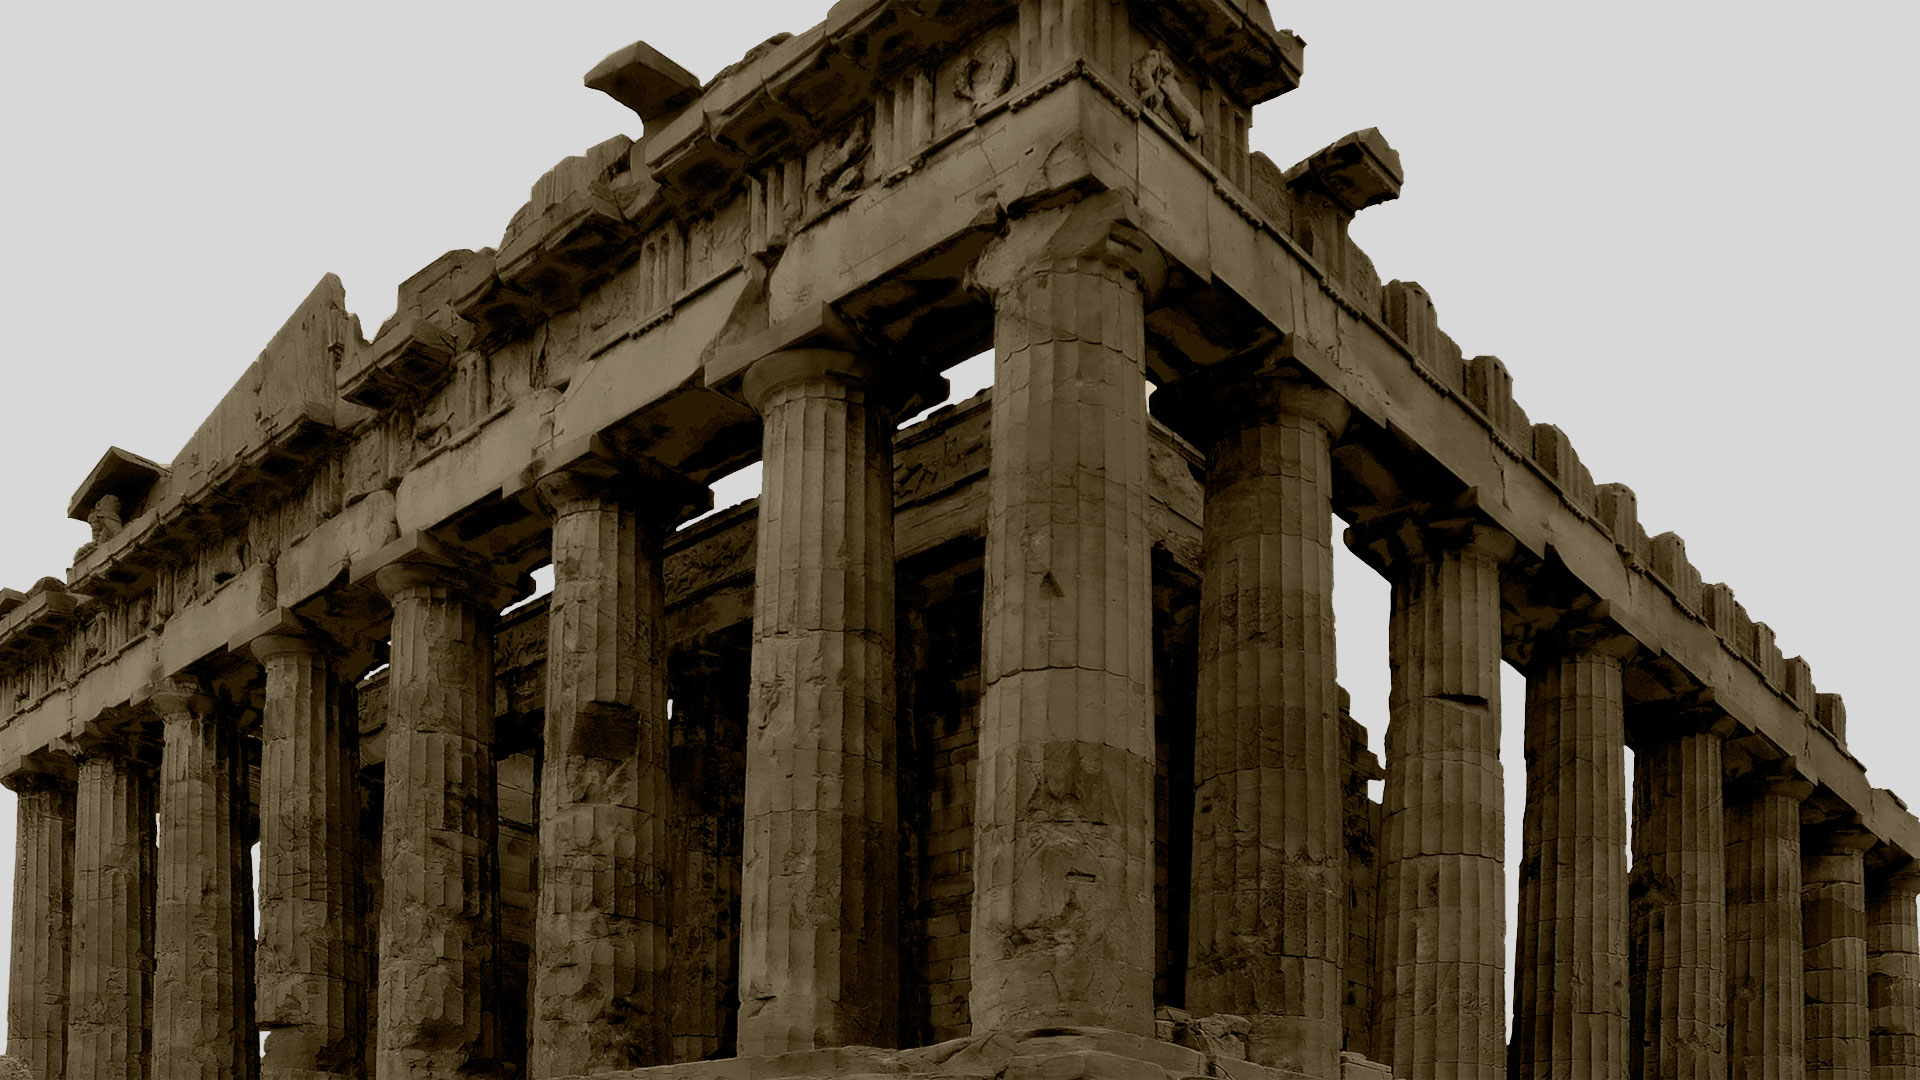 The Apostles, Part 6: At the Center of the Greek World